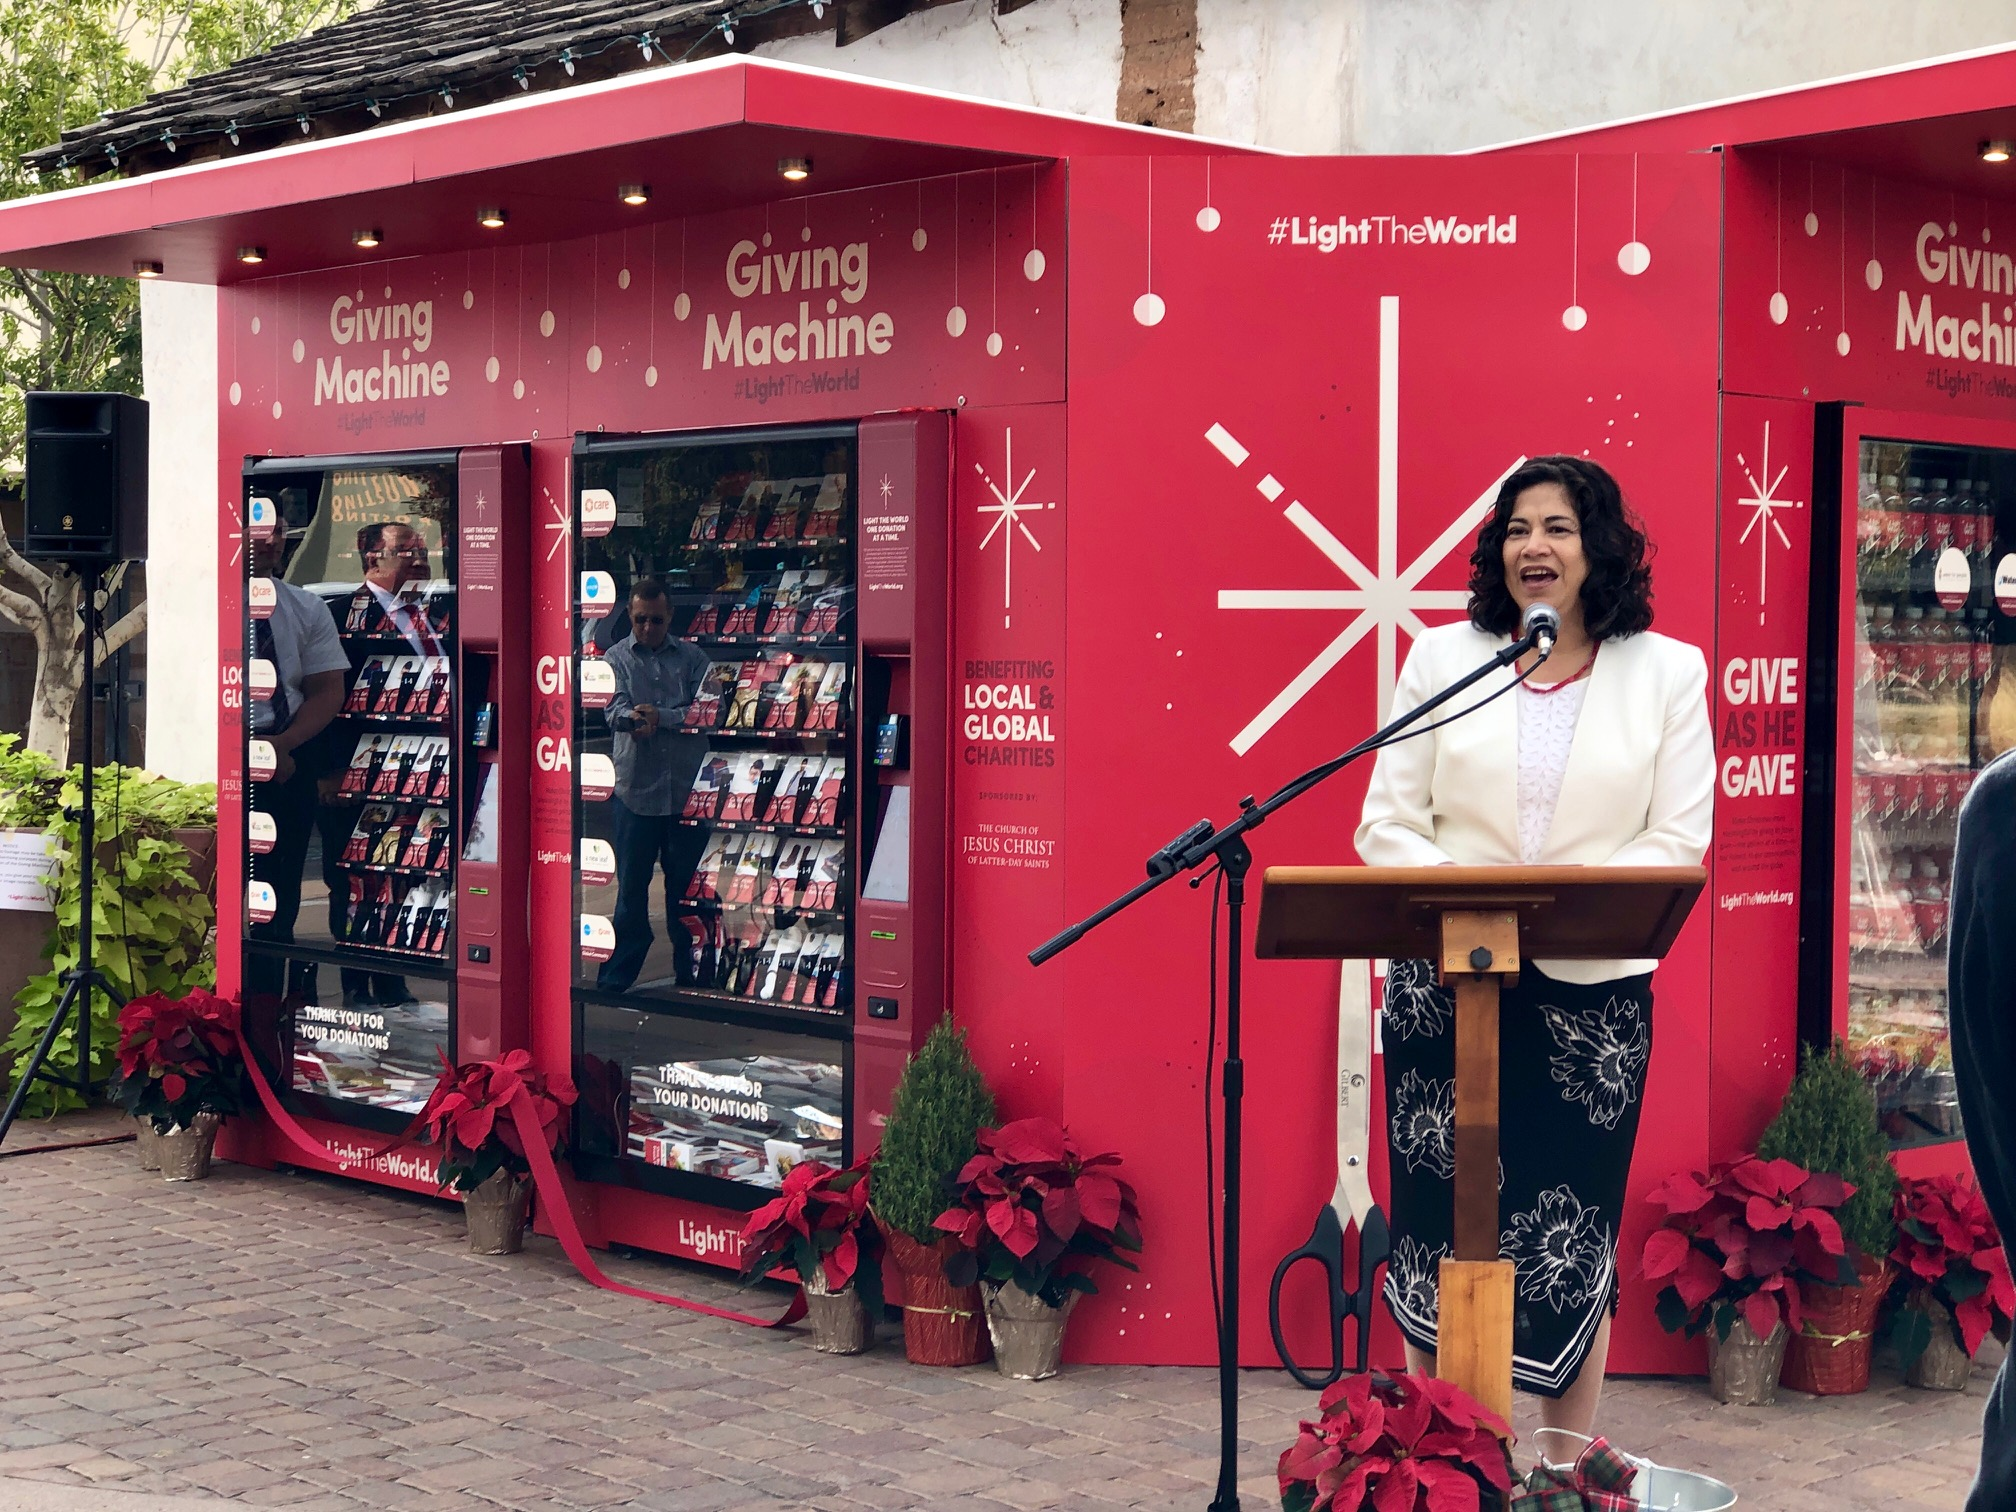 """Sister Reyna I. Aburto, second counselor in the Relief Society general presidency, spoke to a group of media and local leaders. """"Jesus Christ is the light of the world and when we help others we are sharing His light with the people around us."""" The giving machines, part of the Church's popular #LightTheWorld campaign, opened in Gilbert, Arizona, on Thursday, Nov. 29."""